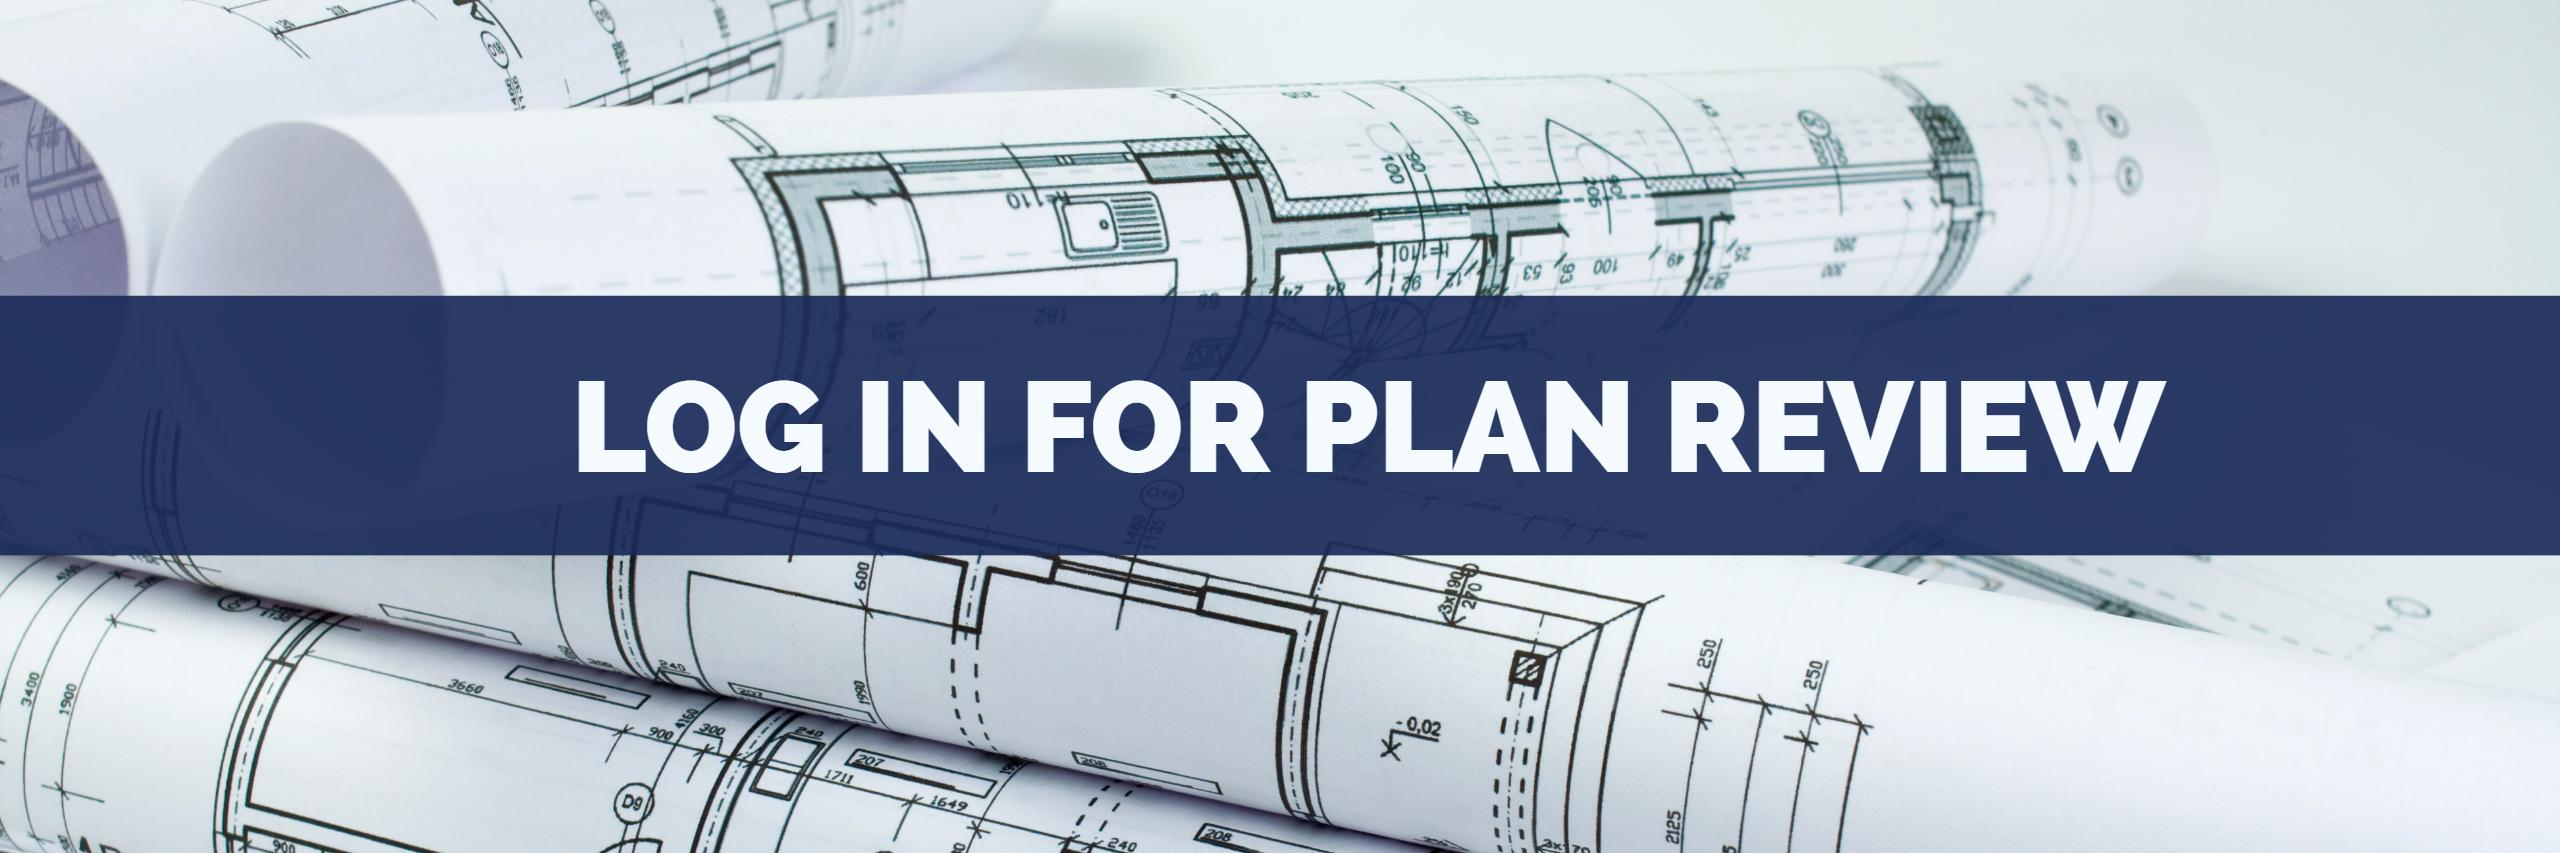 Banner image for the Log In for Plan Review page